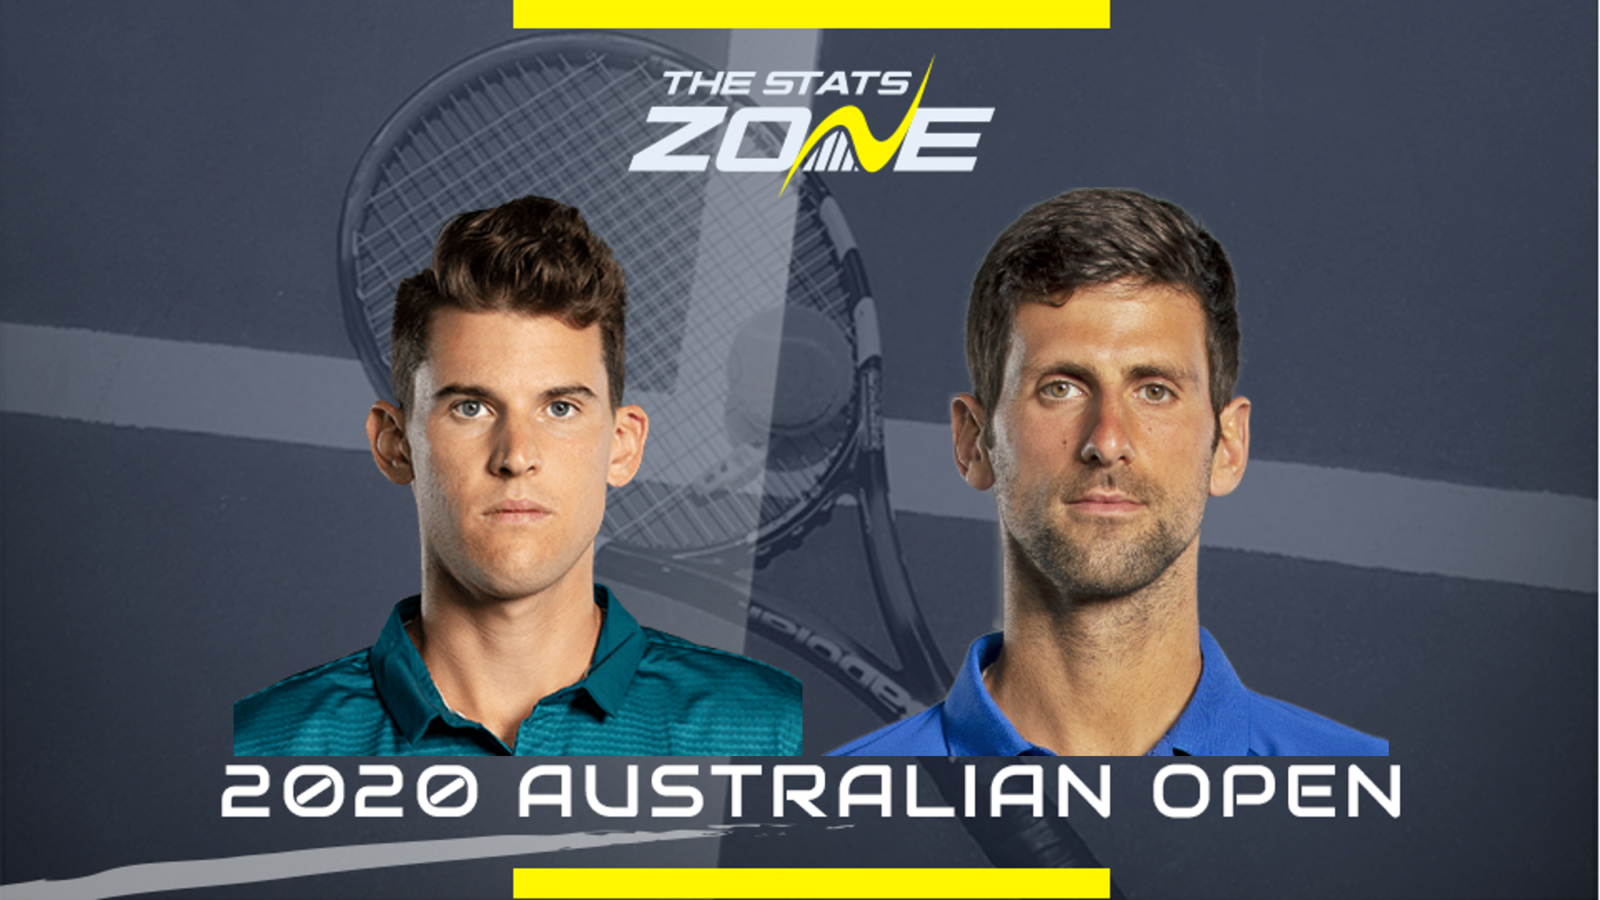 Australian Open Men's Final - Dominic Thiem vs Novak Djokovic Preview & Prediction